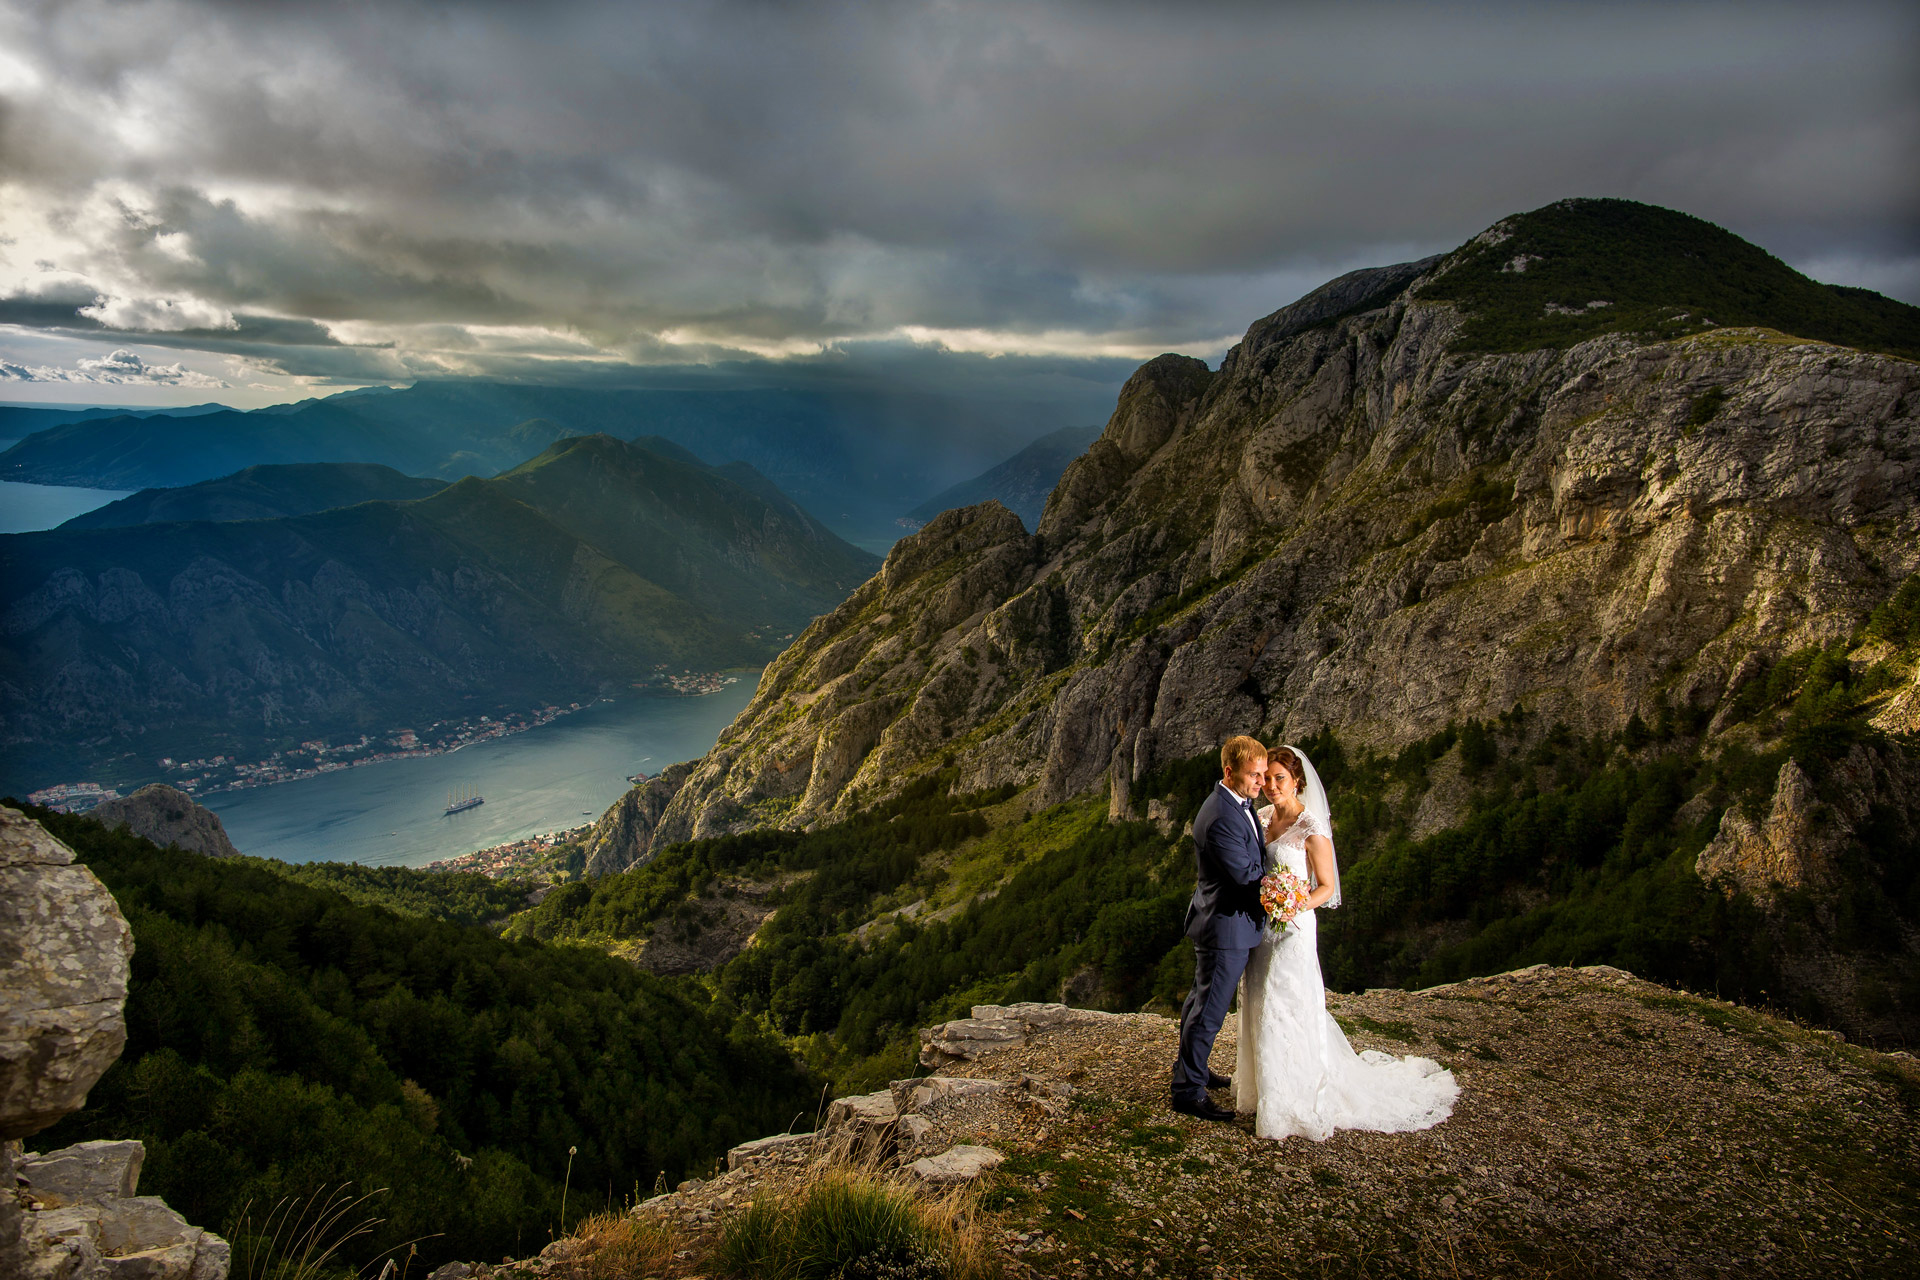 A romantic wedding above the clouds